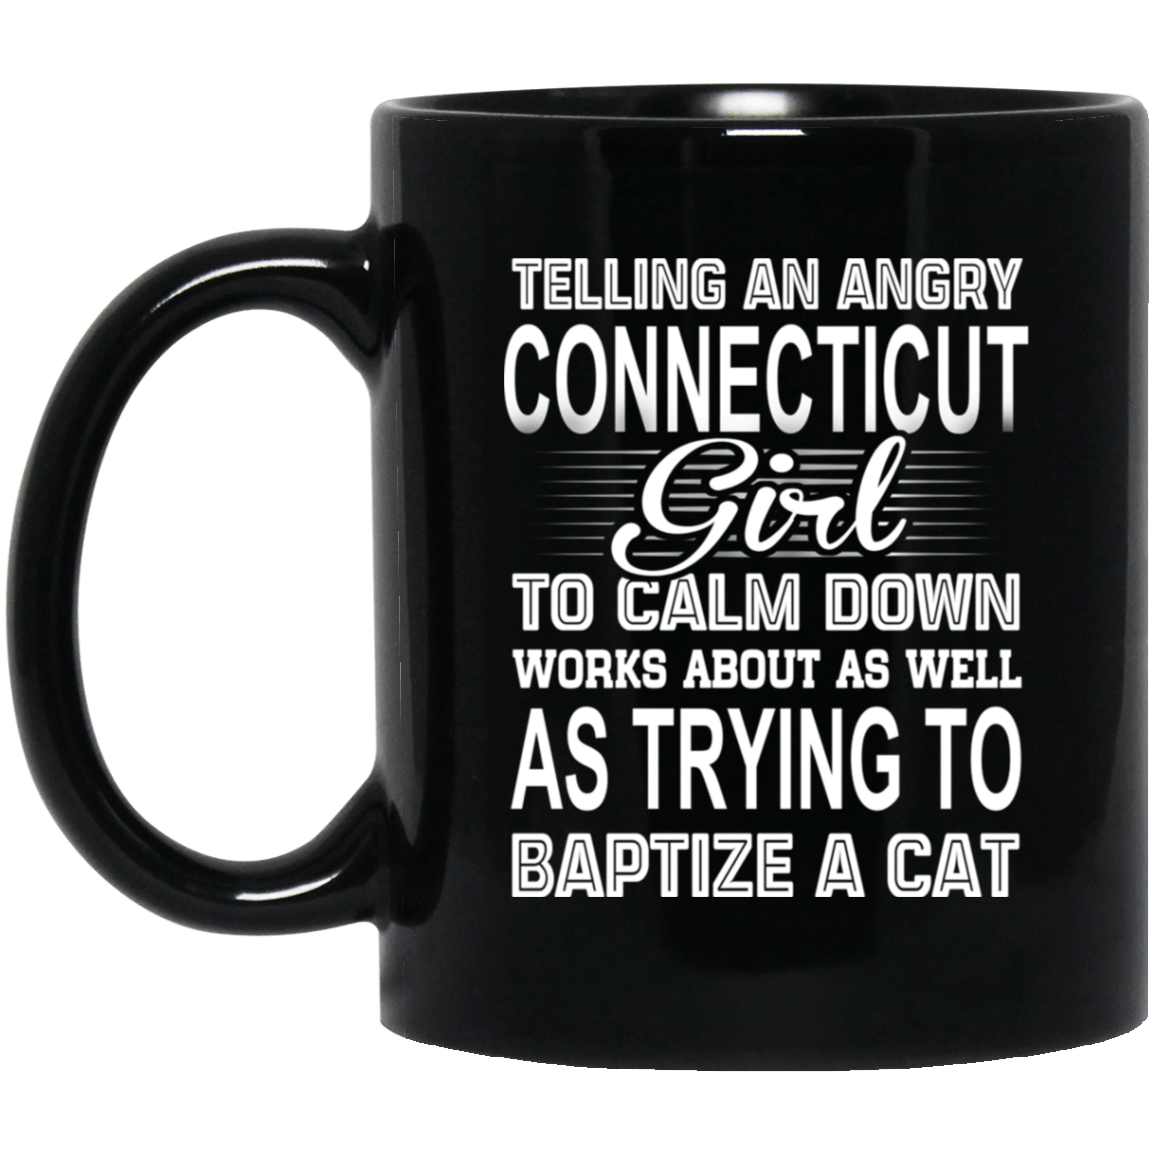 Telling An Angry Connecticut Girl To Calm Down Works About As Well As Trying To Baptize A Cat Mug 1065-10181-76151918-49307 - Tee Ript